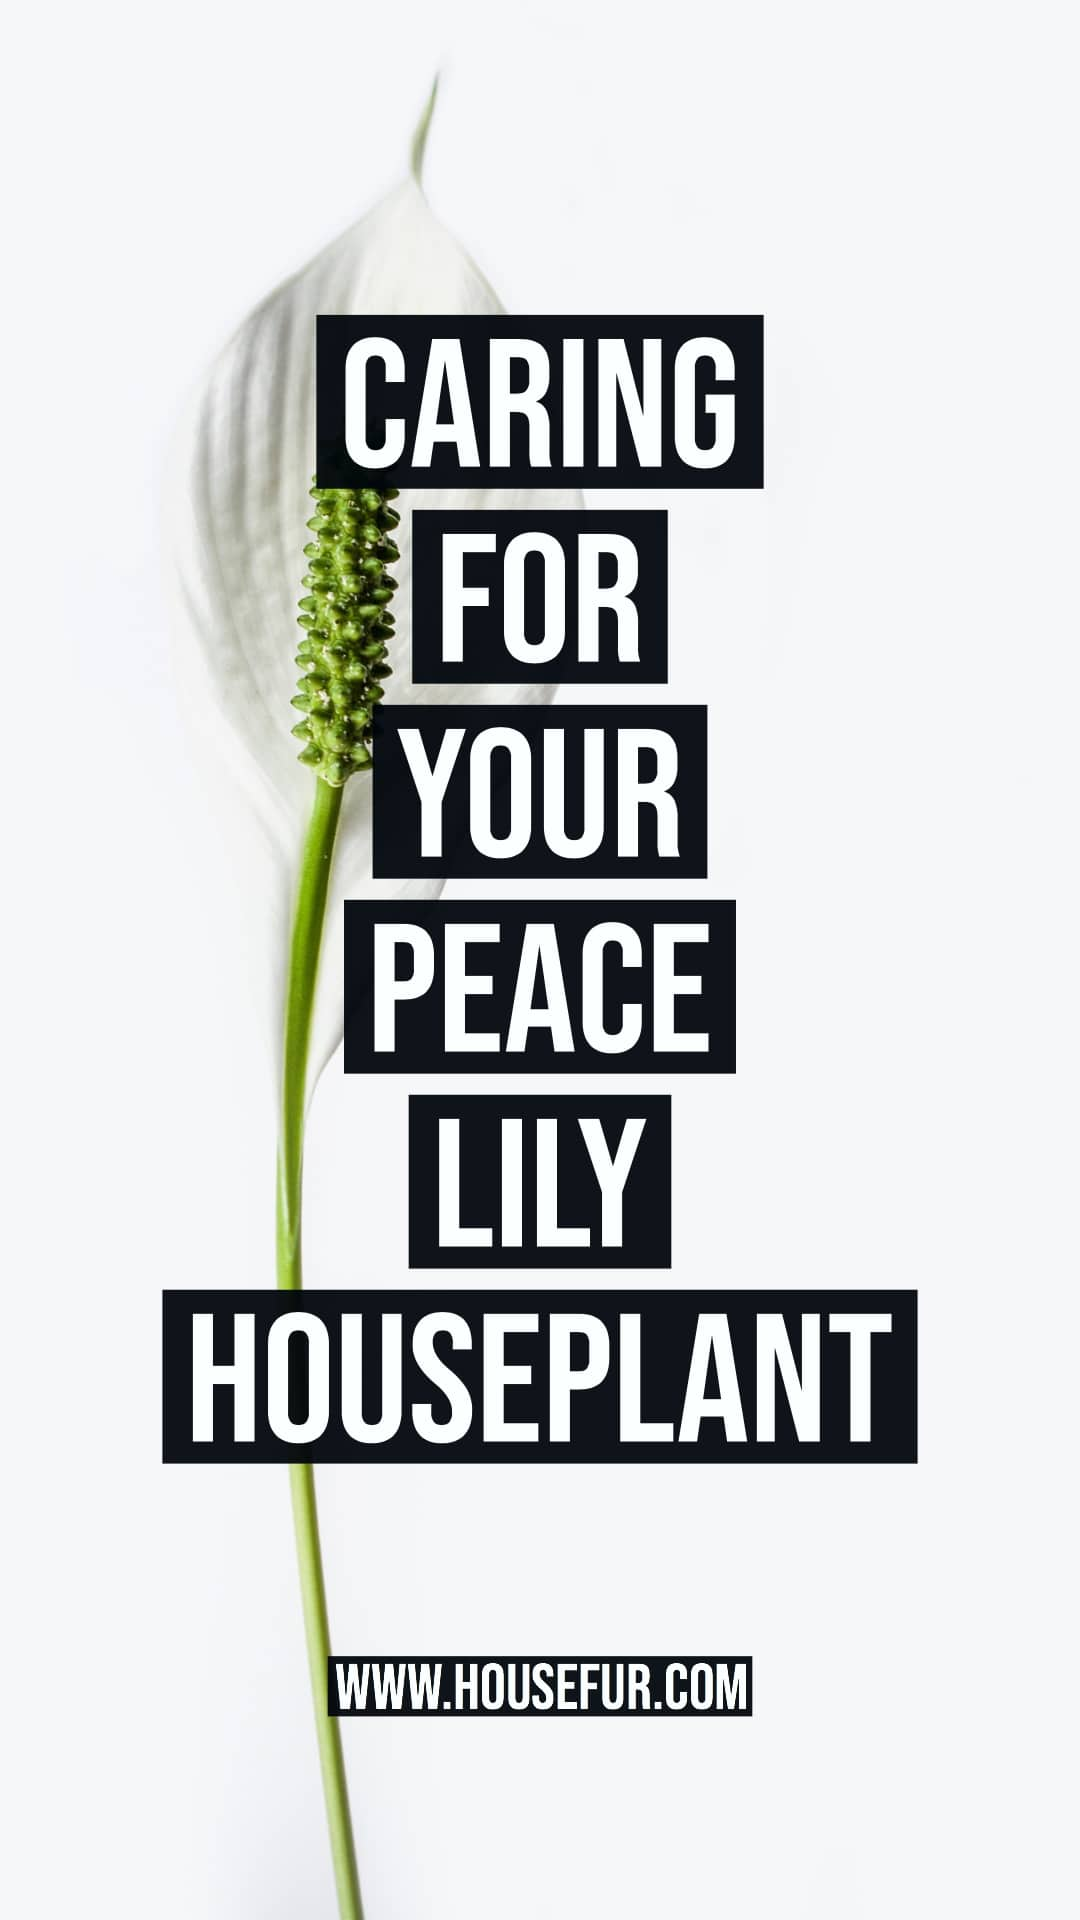 how to care for your peace lily houseplant